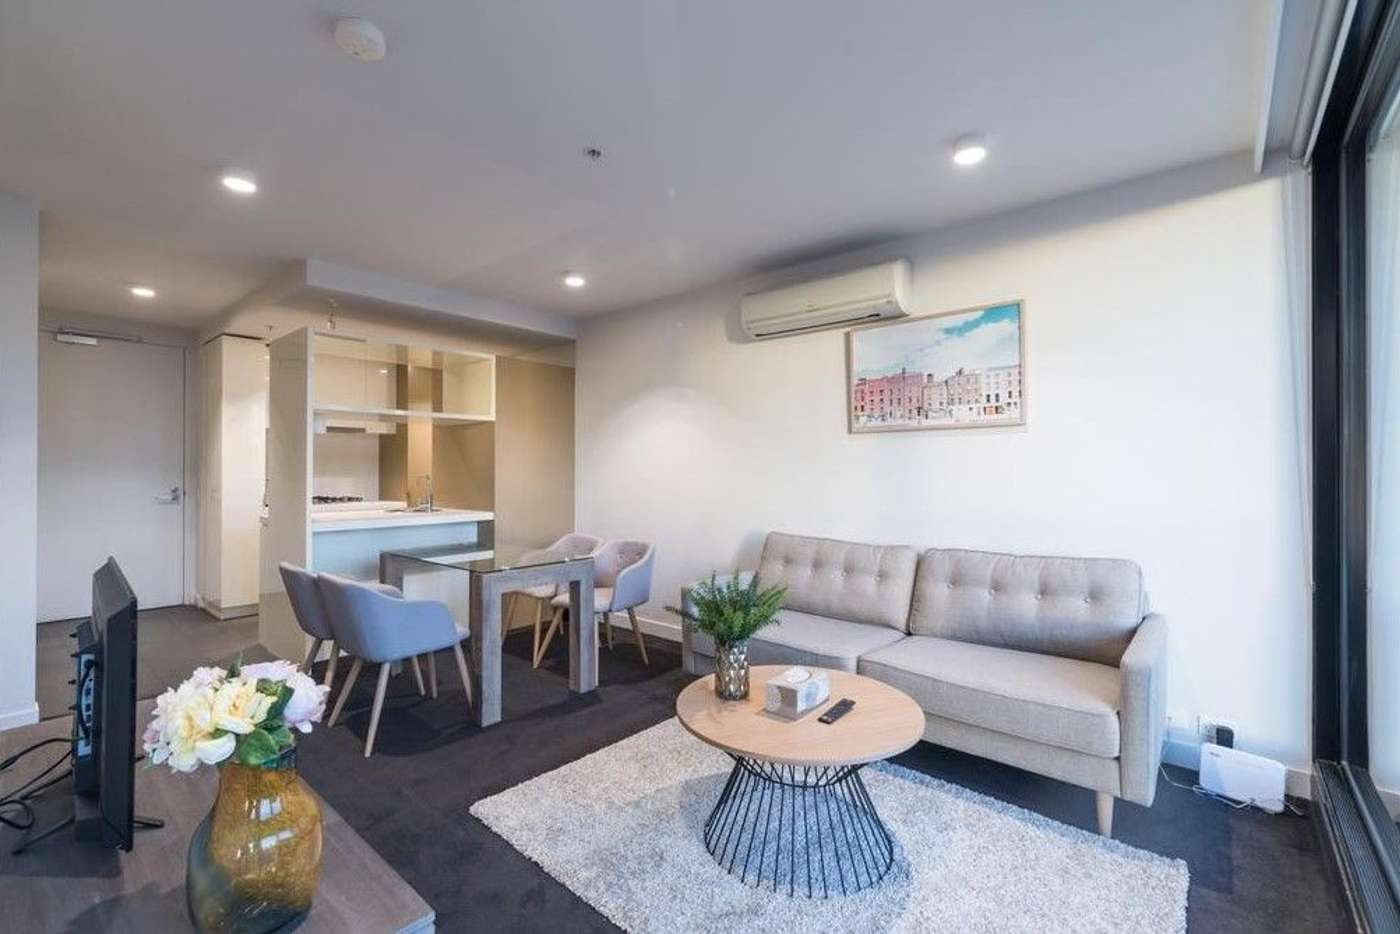 Main view of Homely apartment listing, 1308/33 Mackenzie Street, Melbourne VIC 3000